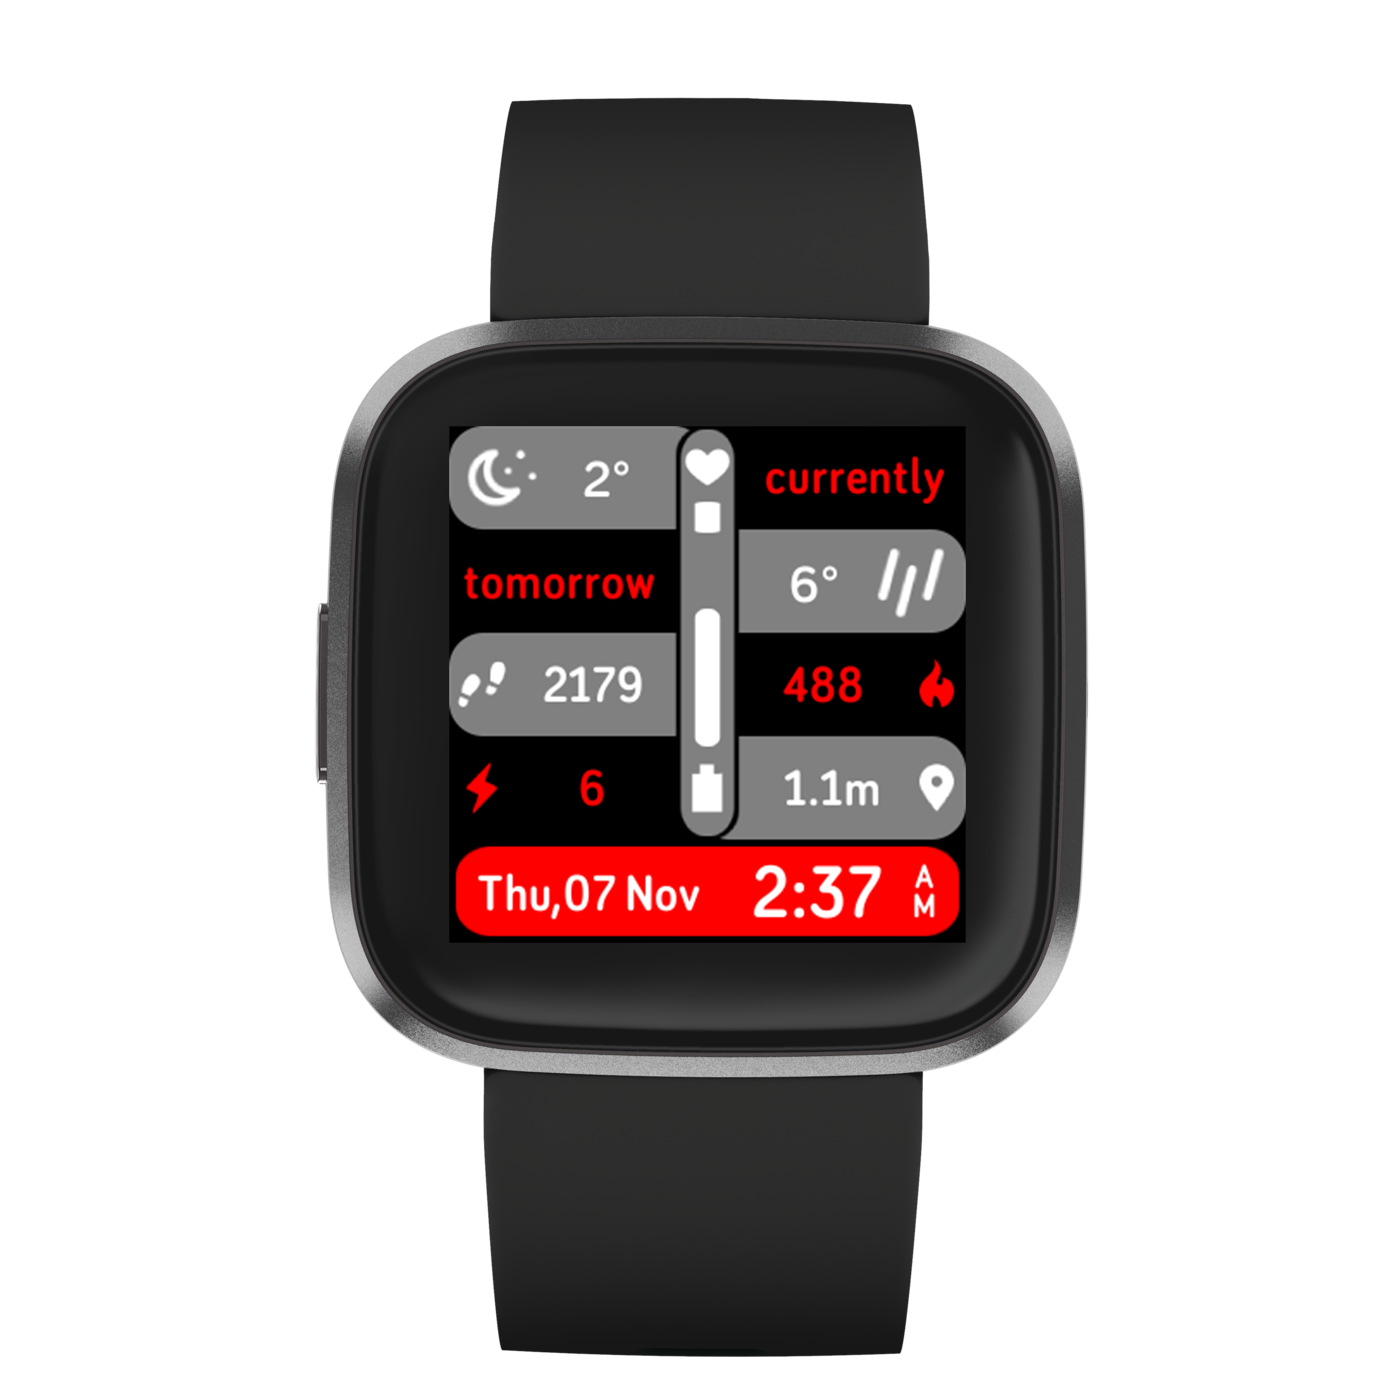 www.watchfacestore.com has amazing #fitbit #watchfaces. Get to know the Locoh. View the current weat...